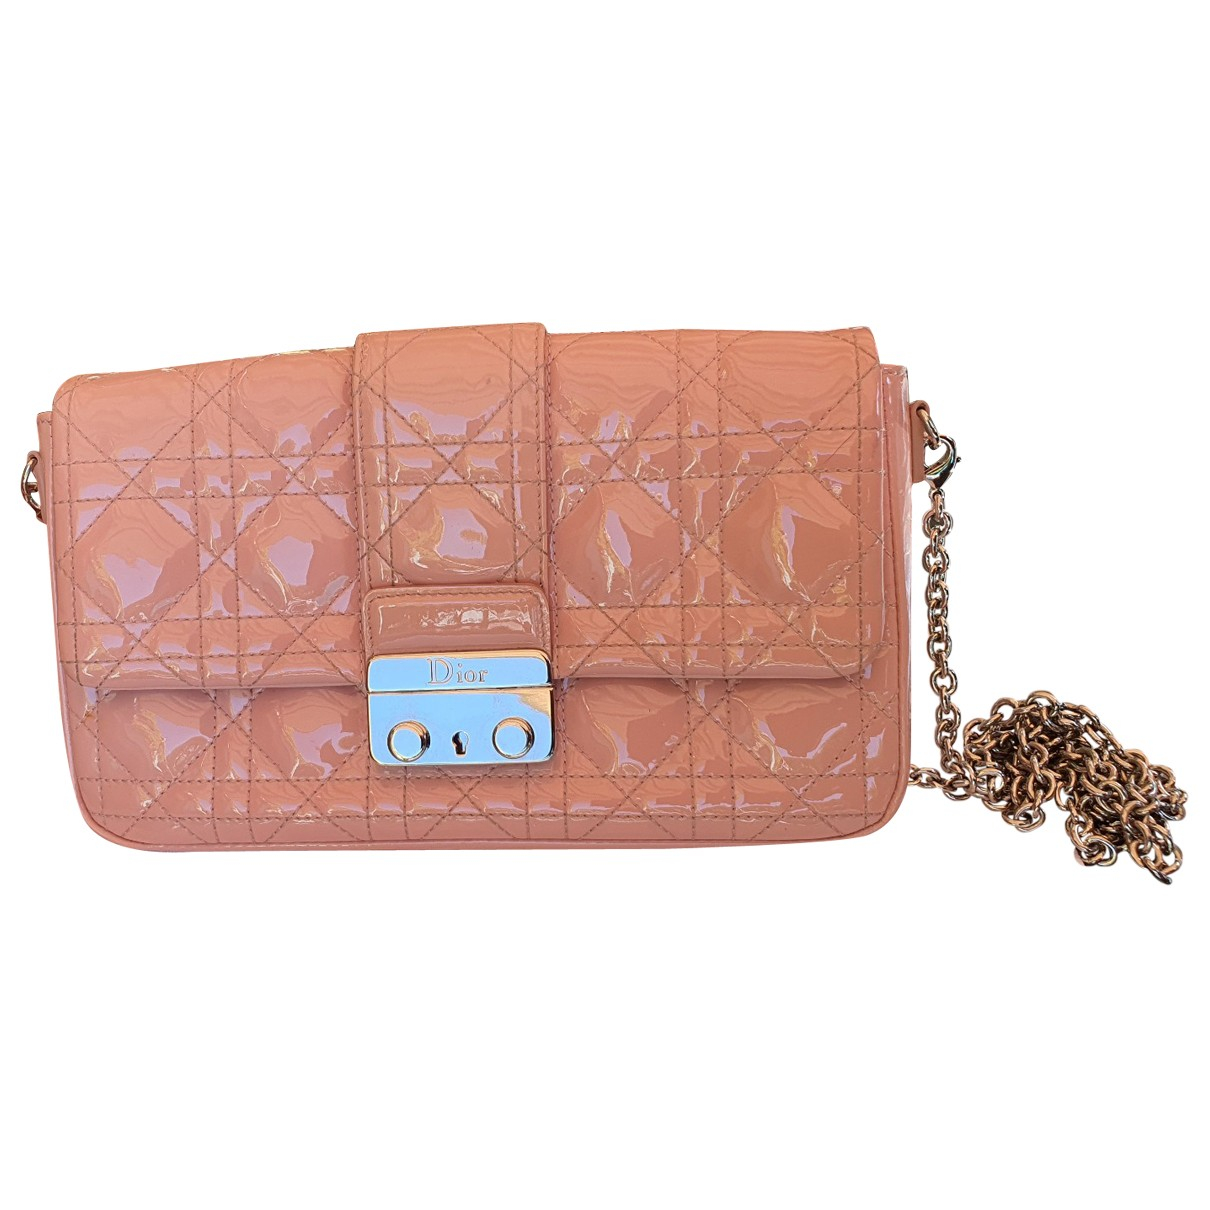 Dior Miss Dior Pink Patent leather Clutch bag for Women \N